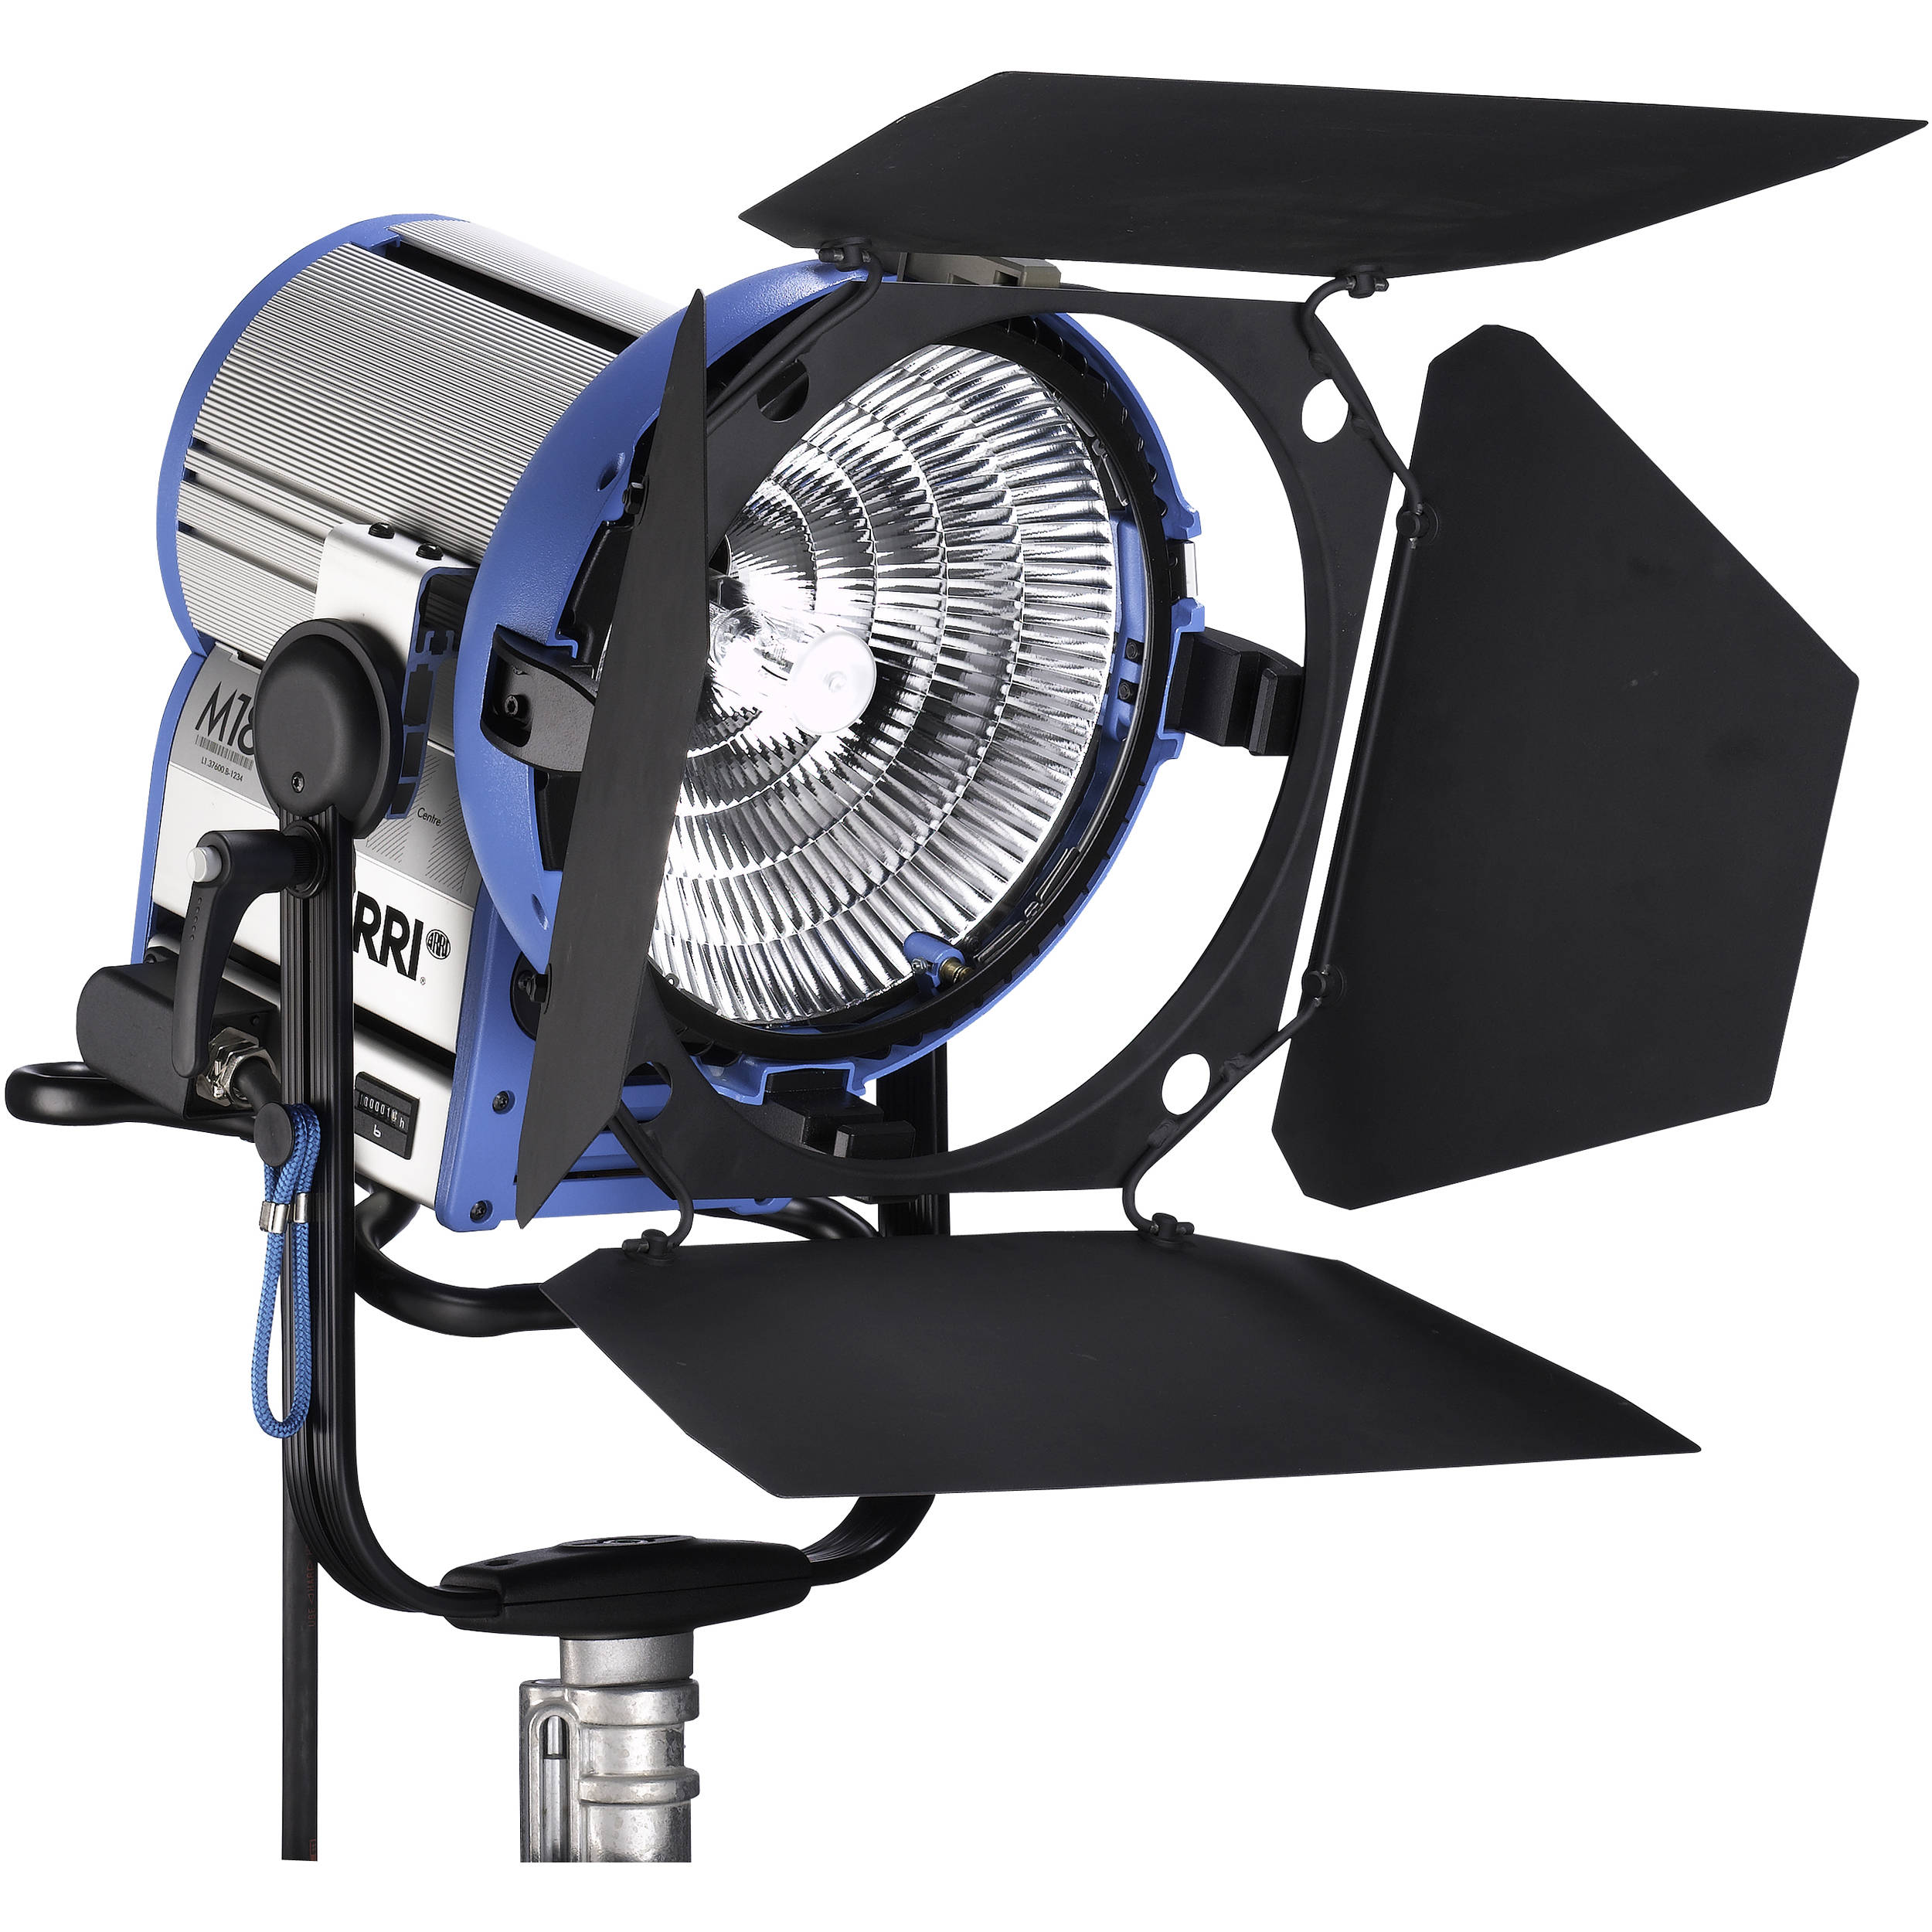 Arri M18 Hmi System With High Speed Electronic L00006575 Bh How To Hook Up Ballast Alf And Dmx